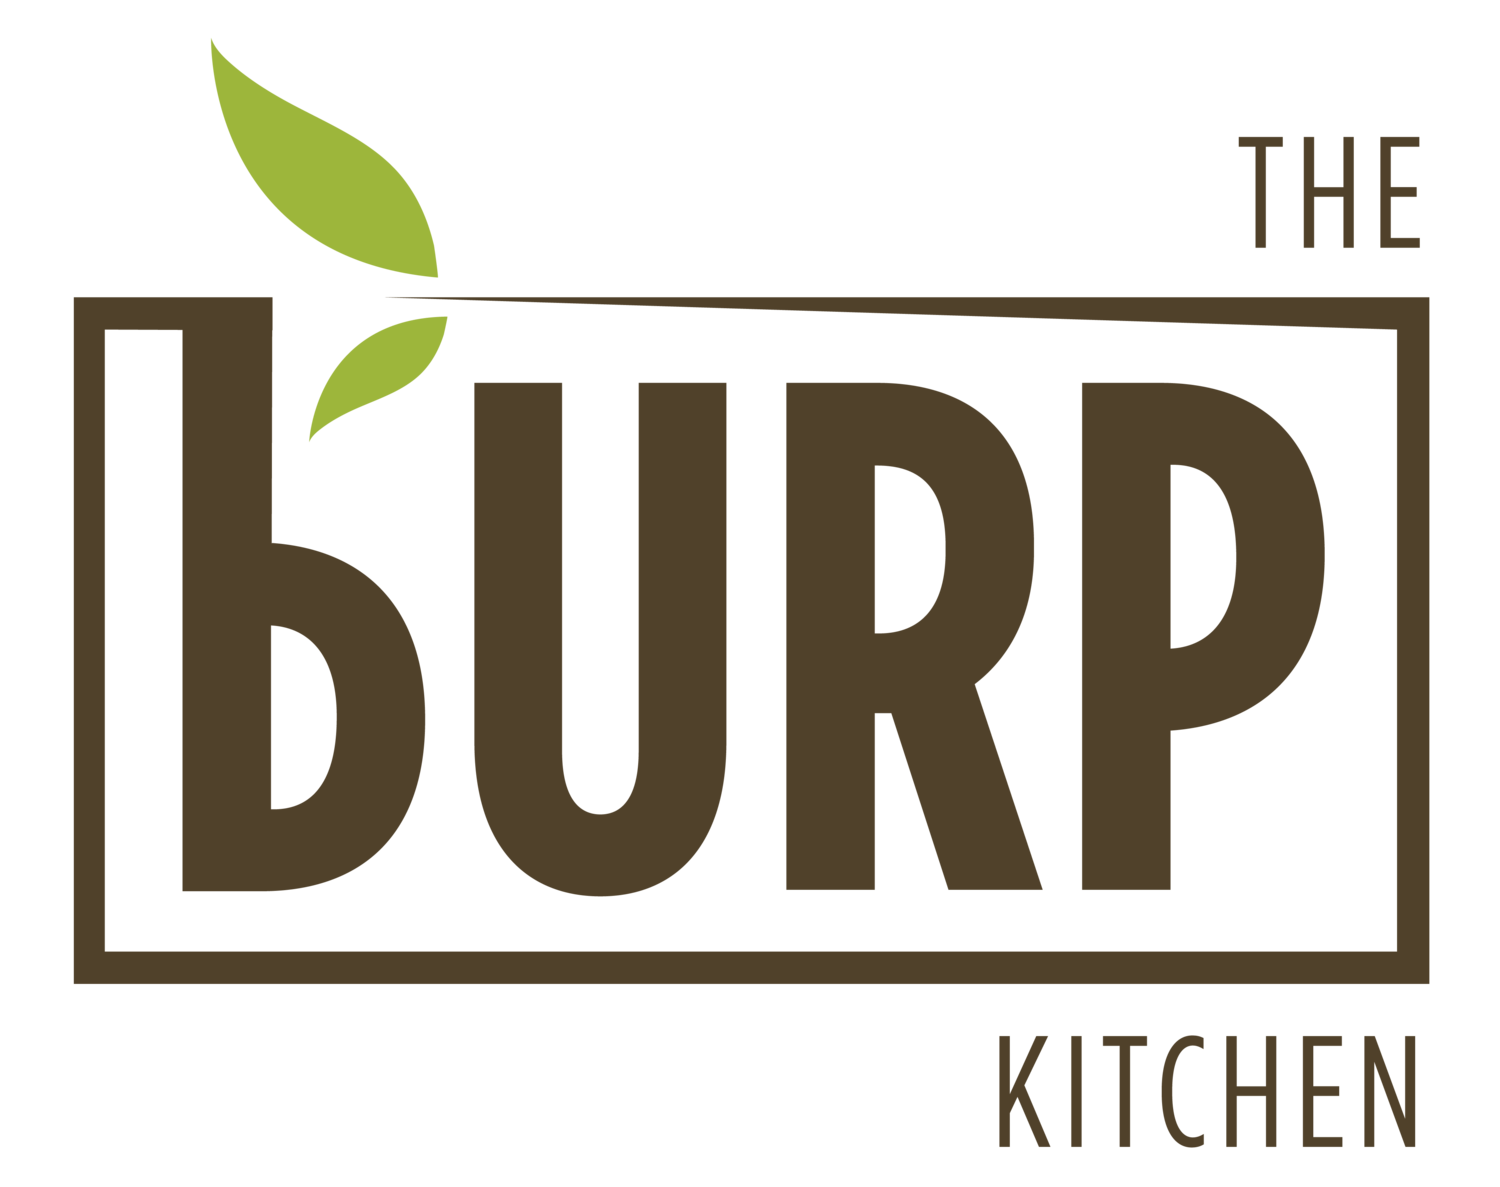 the burp kitchen